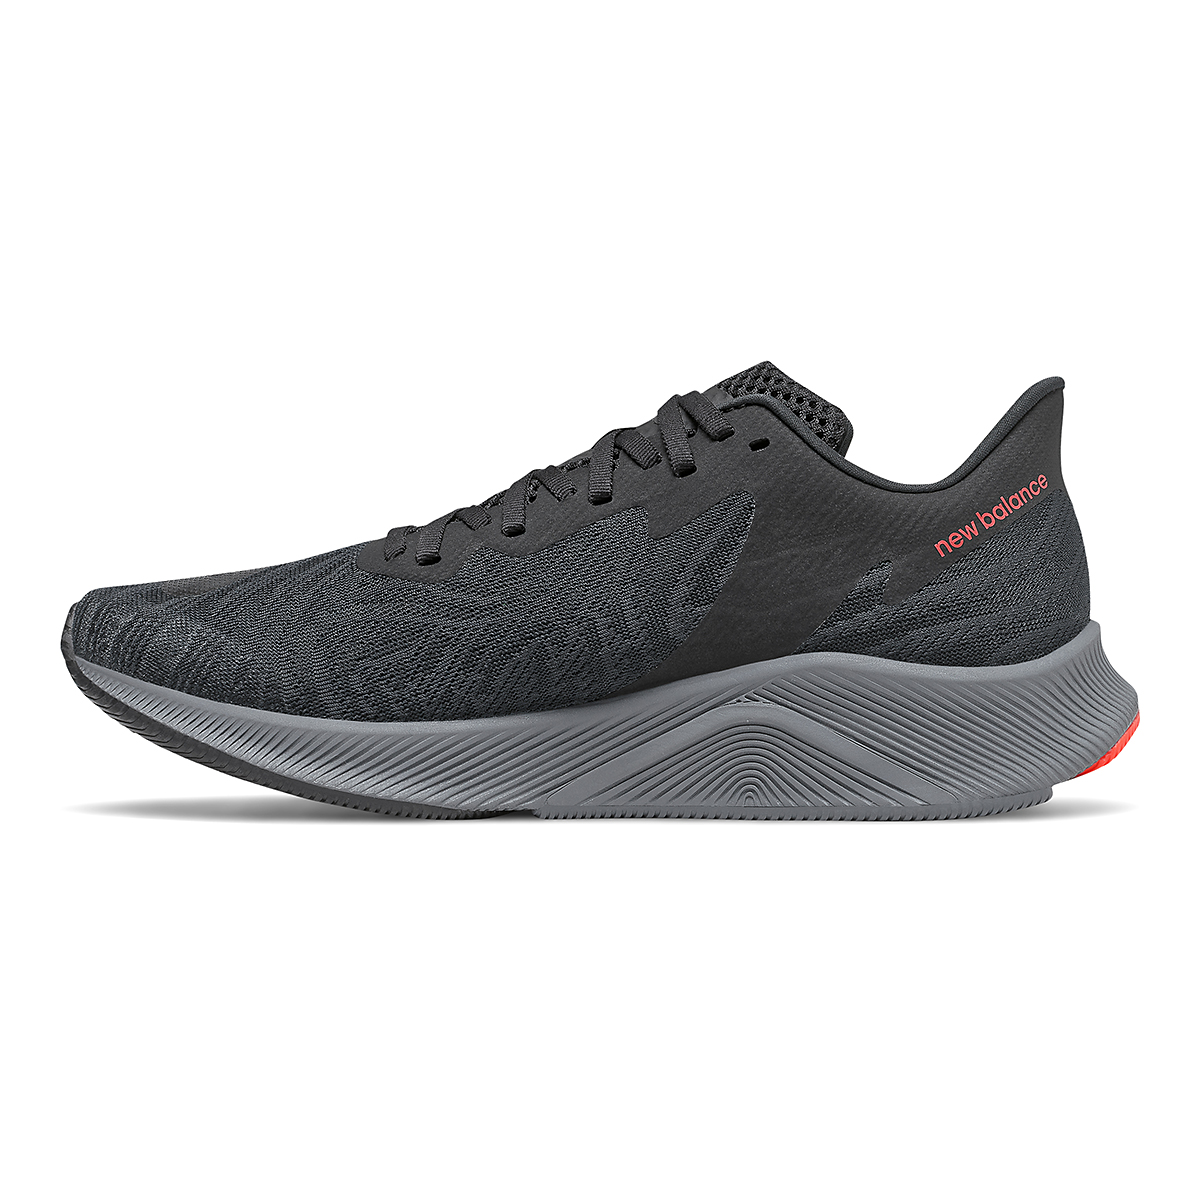 Men's New Balance Fuelcell Prism Running Shoe, , large, image 2